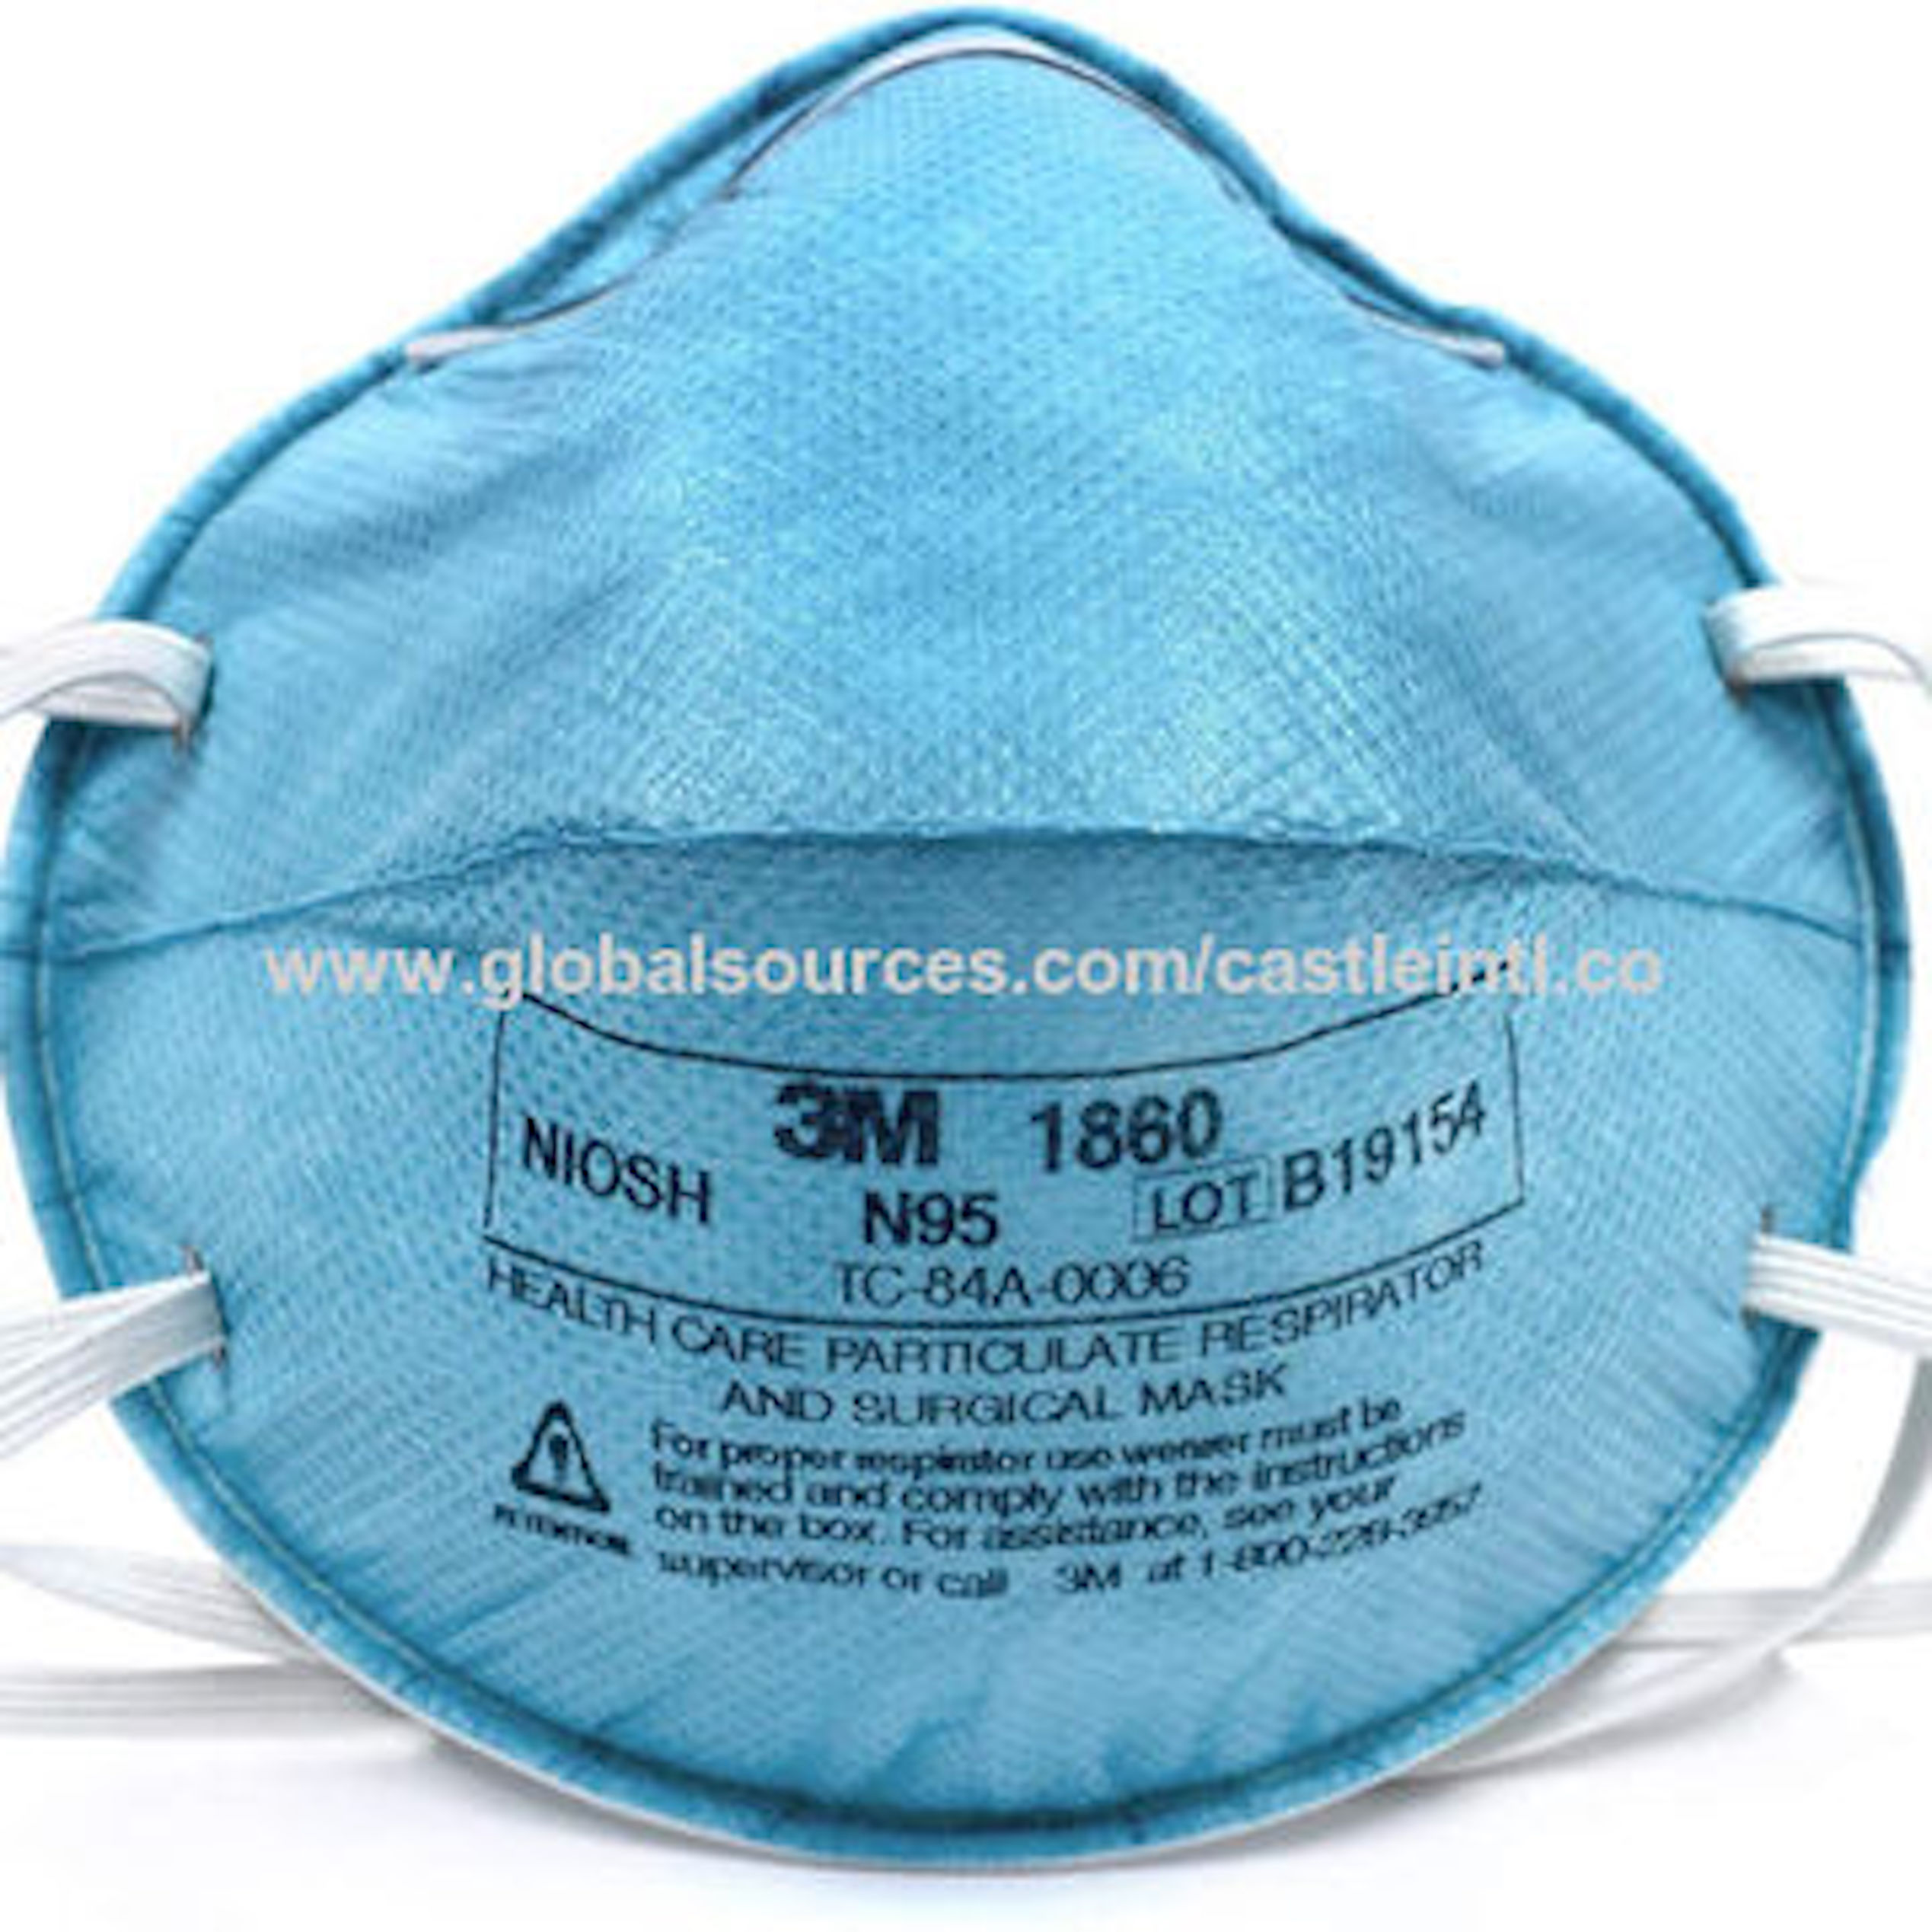 3M--N95-1860 Dust Mask Cup Style N95 Face Mask 1860 Particulate Respirator MMM